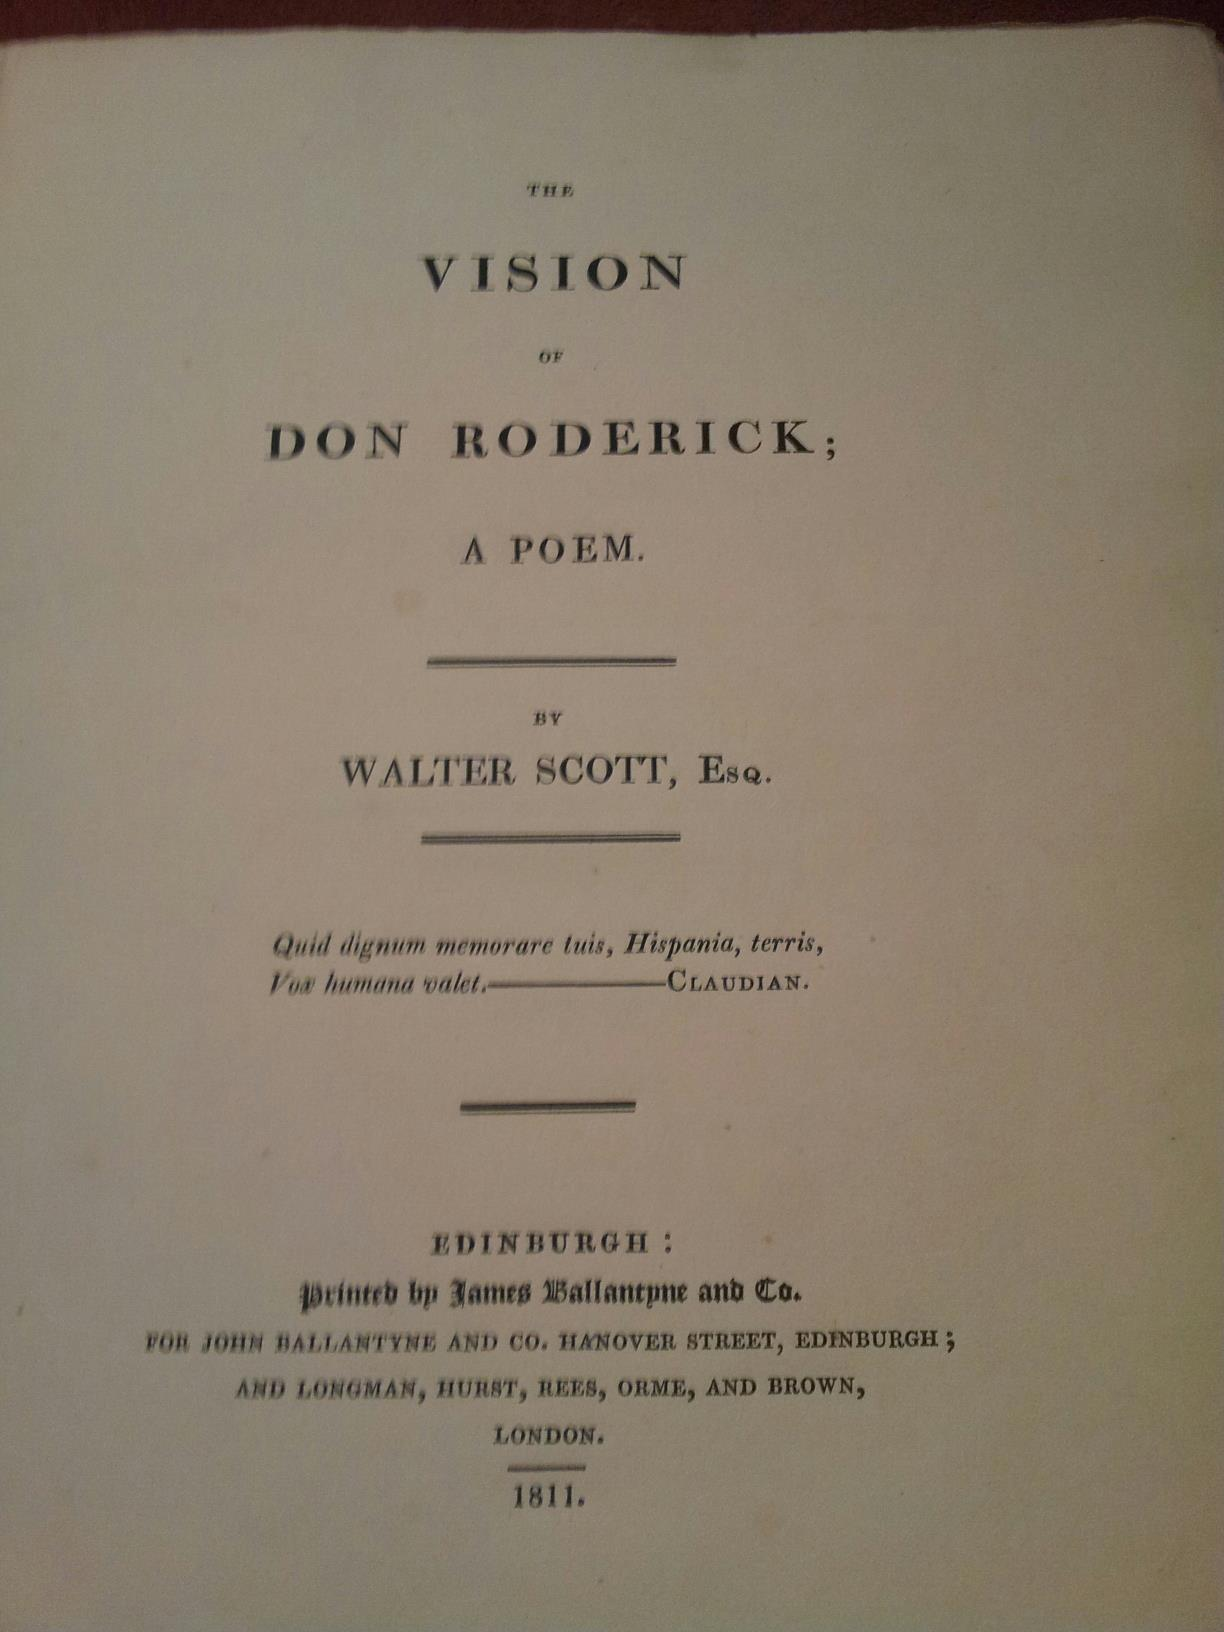 THE VISION OF DON RODERICK; A POEM